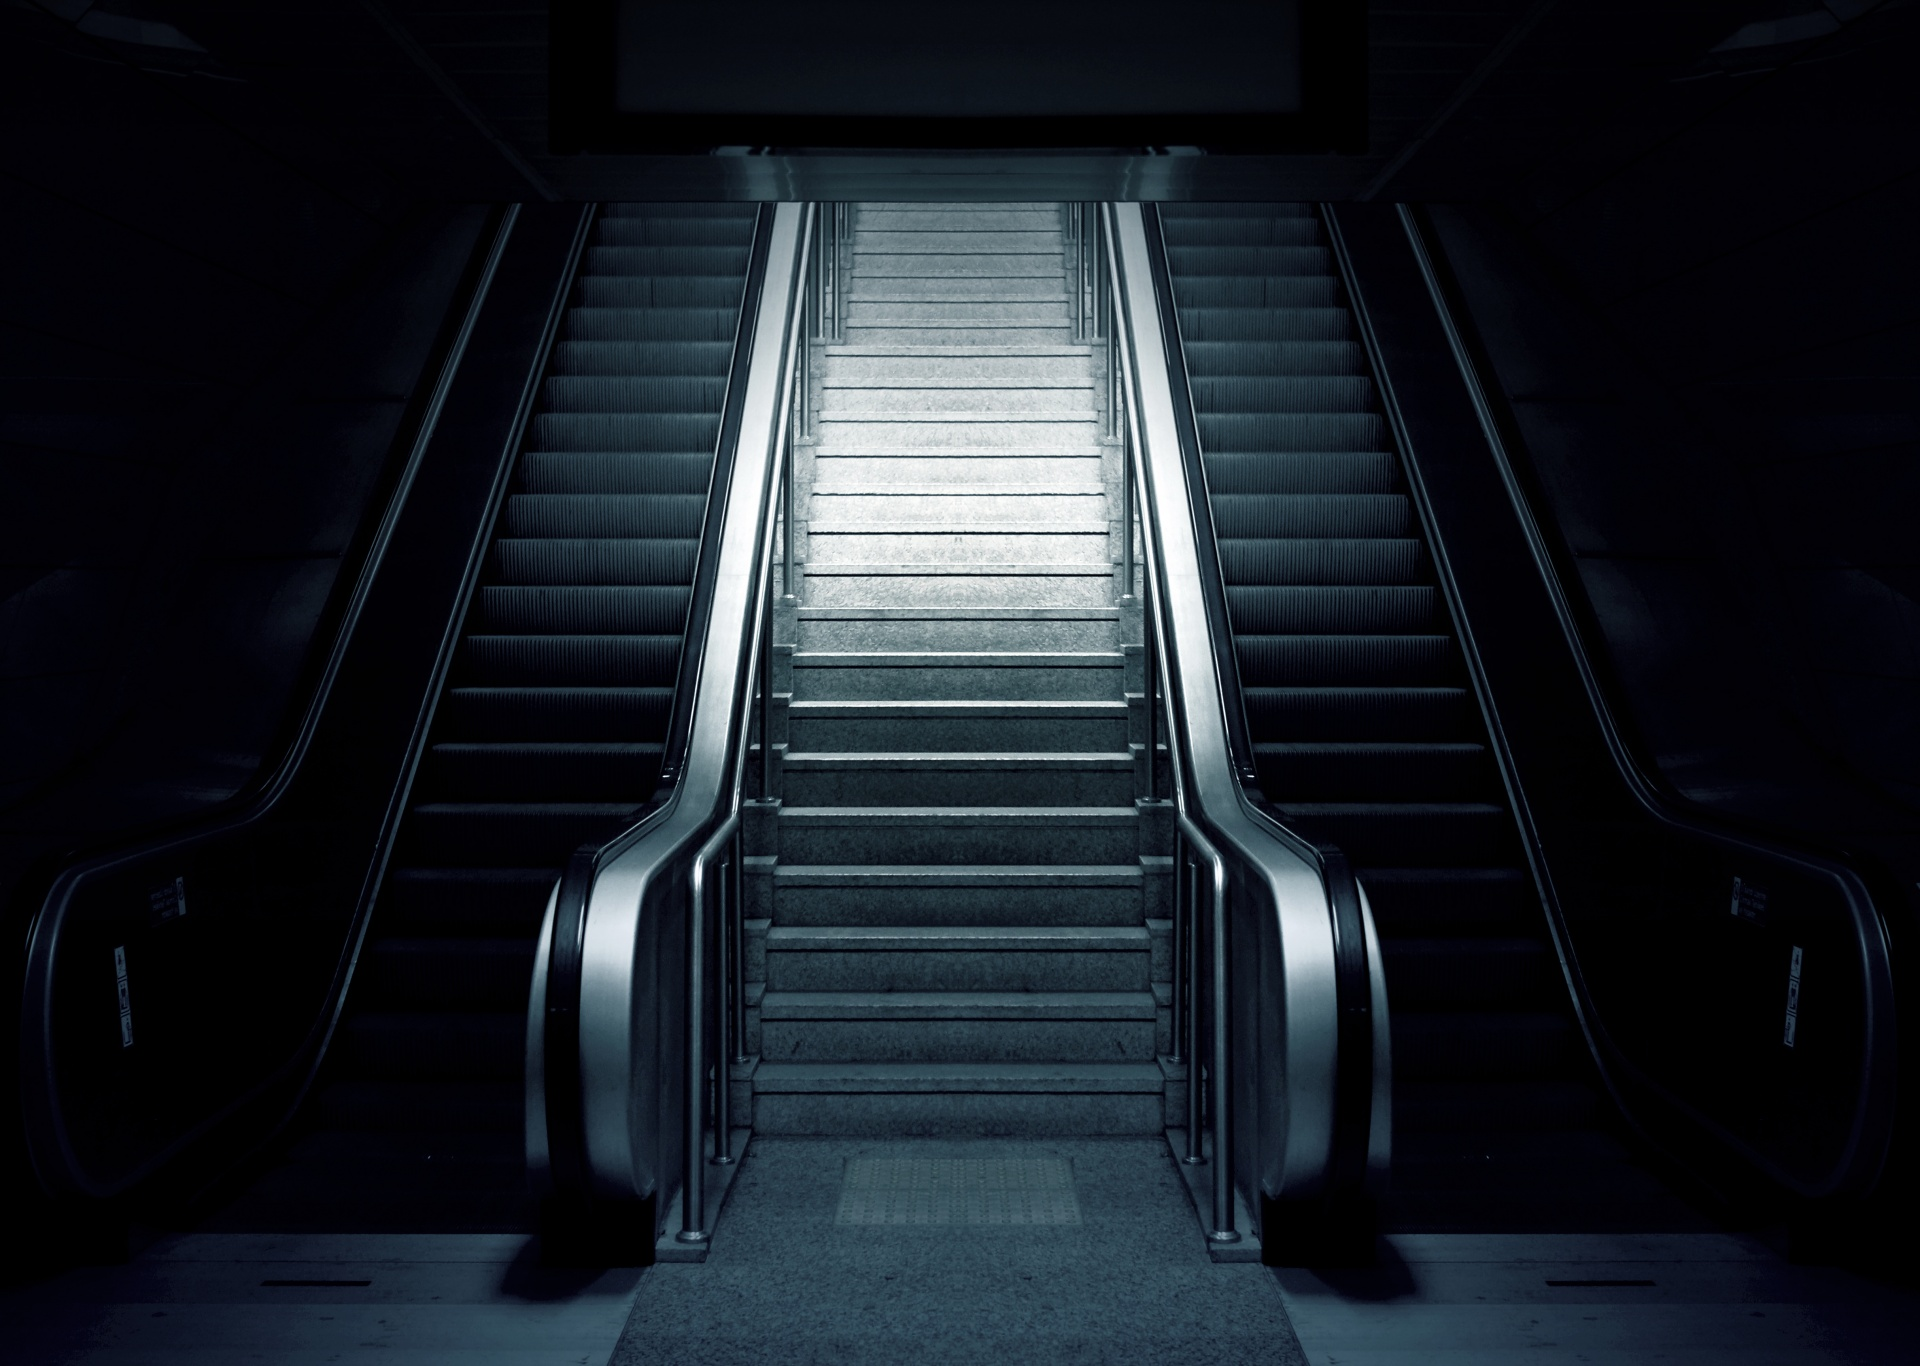 Escalator Metro Stairs Free Stock Photo - Public Domain Pictures